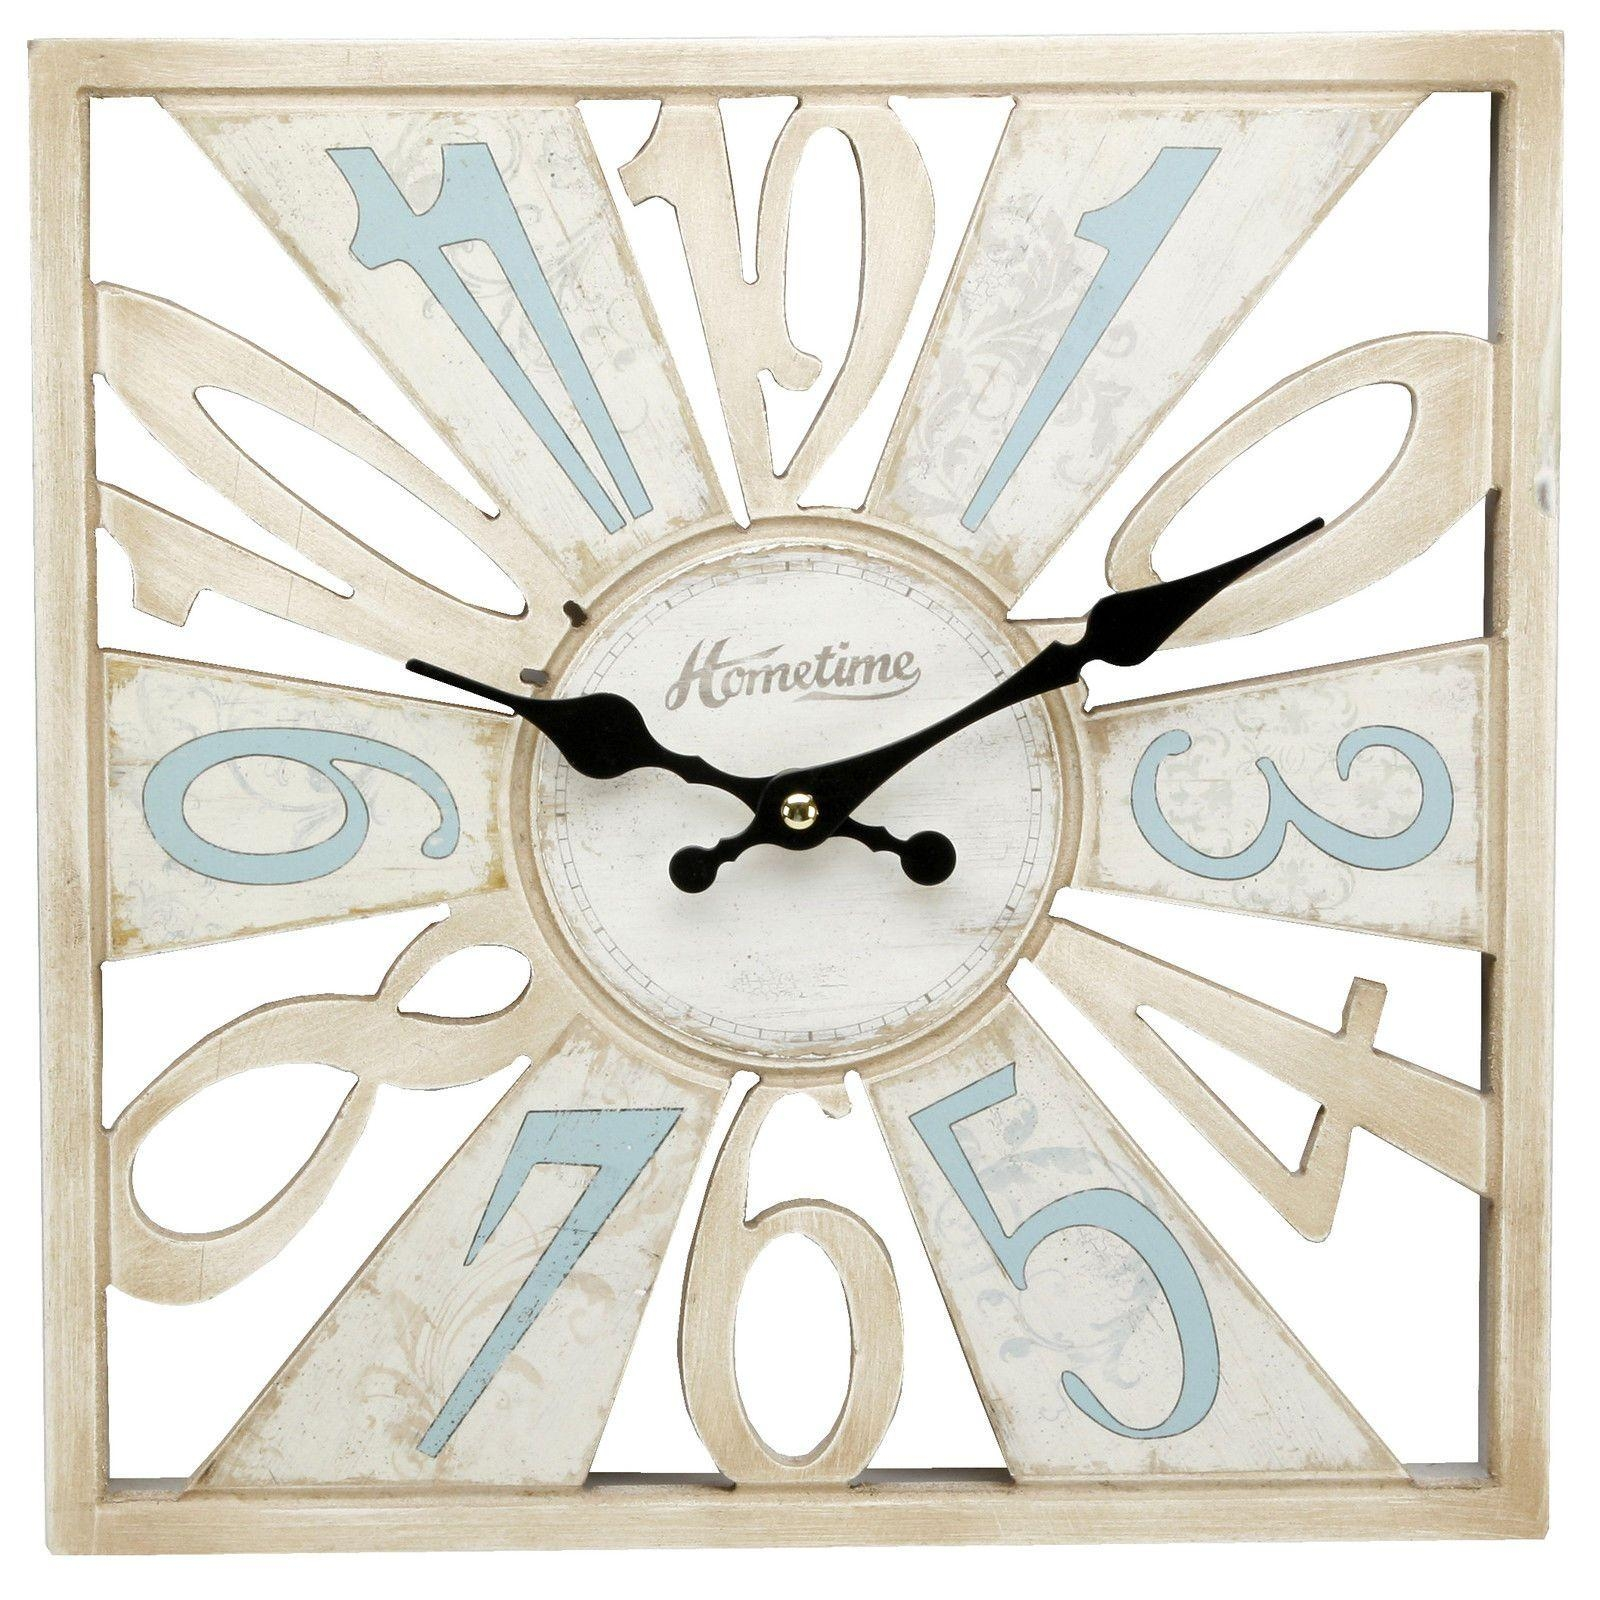 Cut Out Wooden Wall Clock Duck Egg Blue & Cream Shabby Chic Wall Pertaining To Blue And Cream Wall Art (Image 11 of 20)